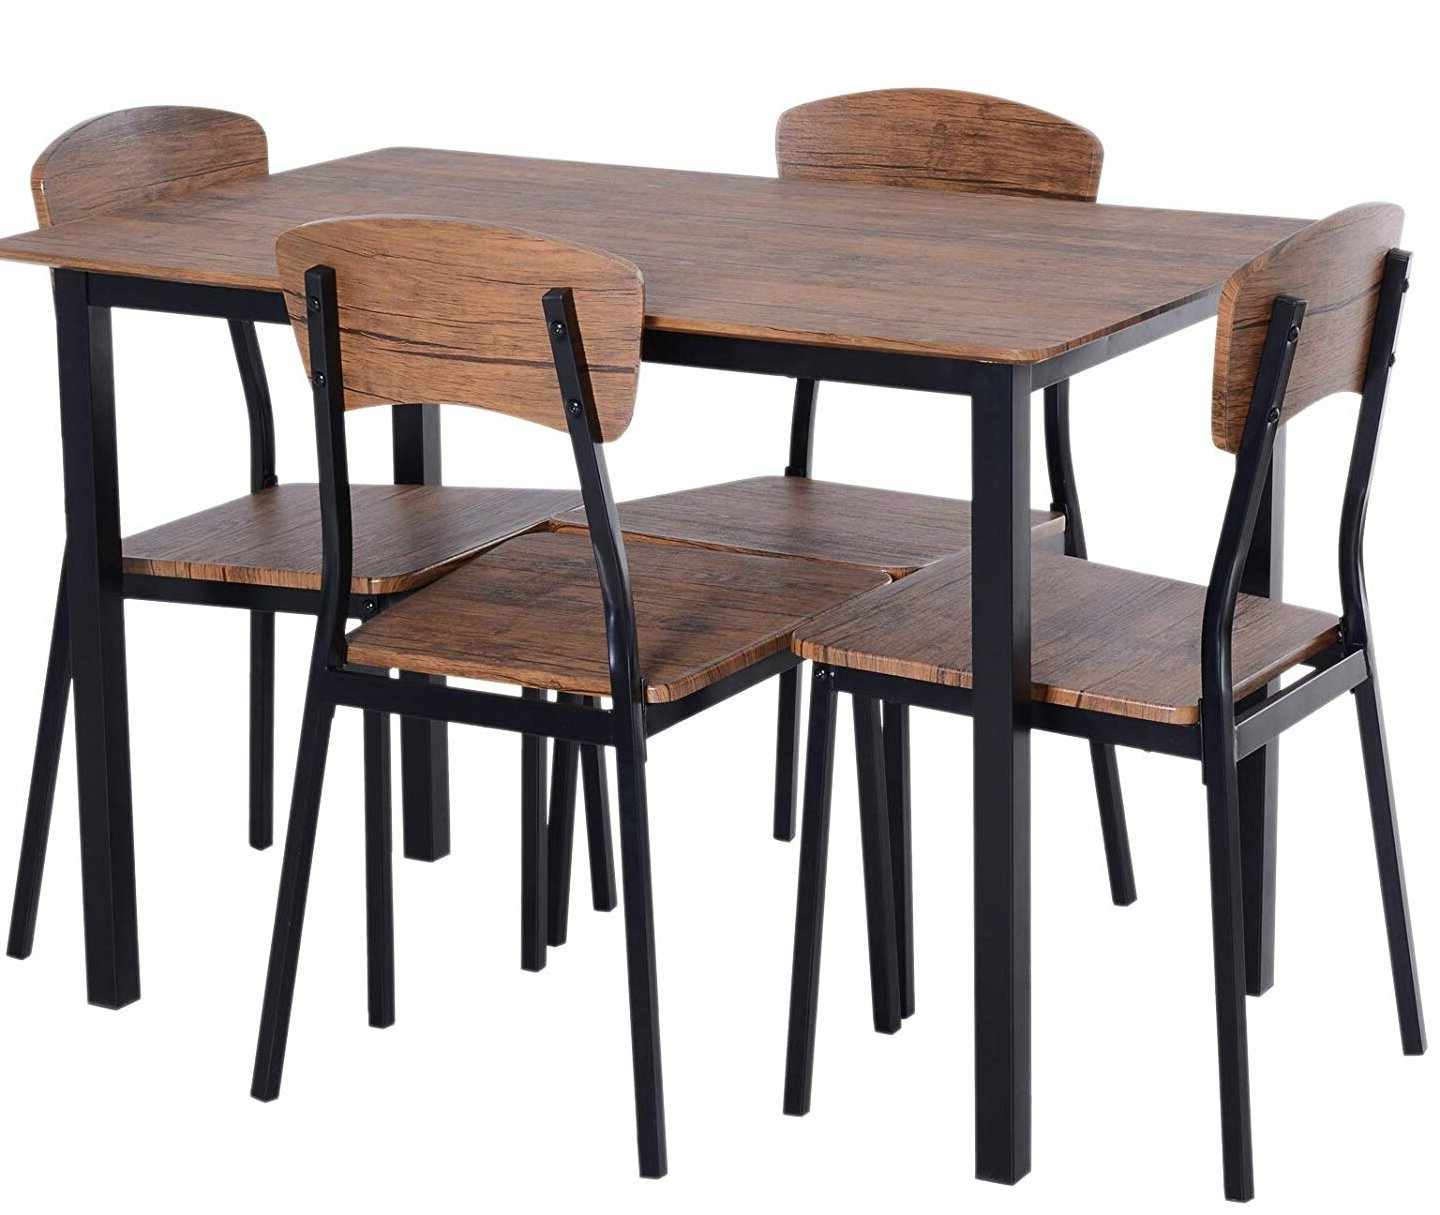 Emmeline 5 Piece Breakfast Nook Dining Sets Pertaining To Most Recently Released Union Rustic Castellanos Modern 5 Piece Counter Height Dining Set (View 17 of 20)